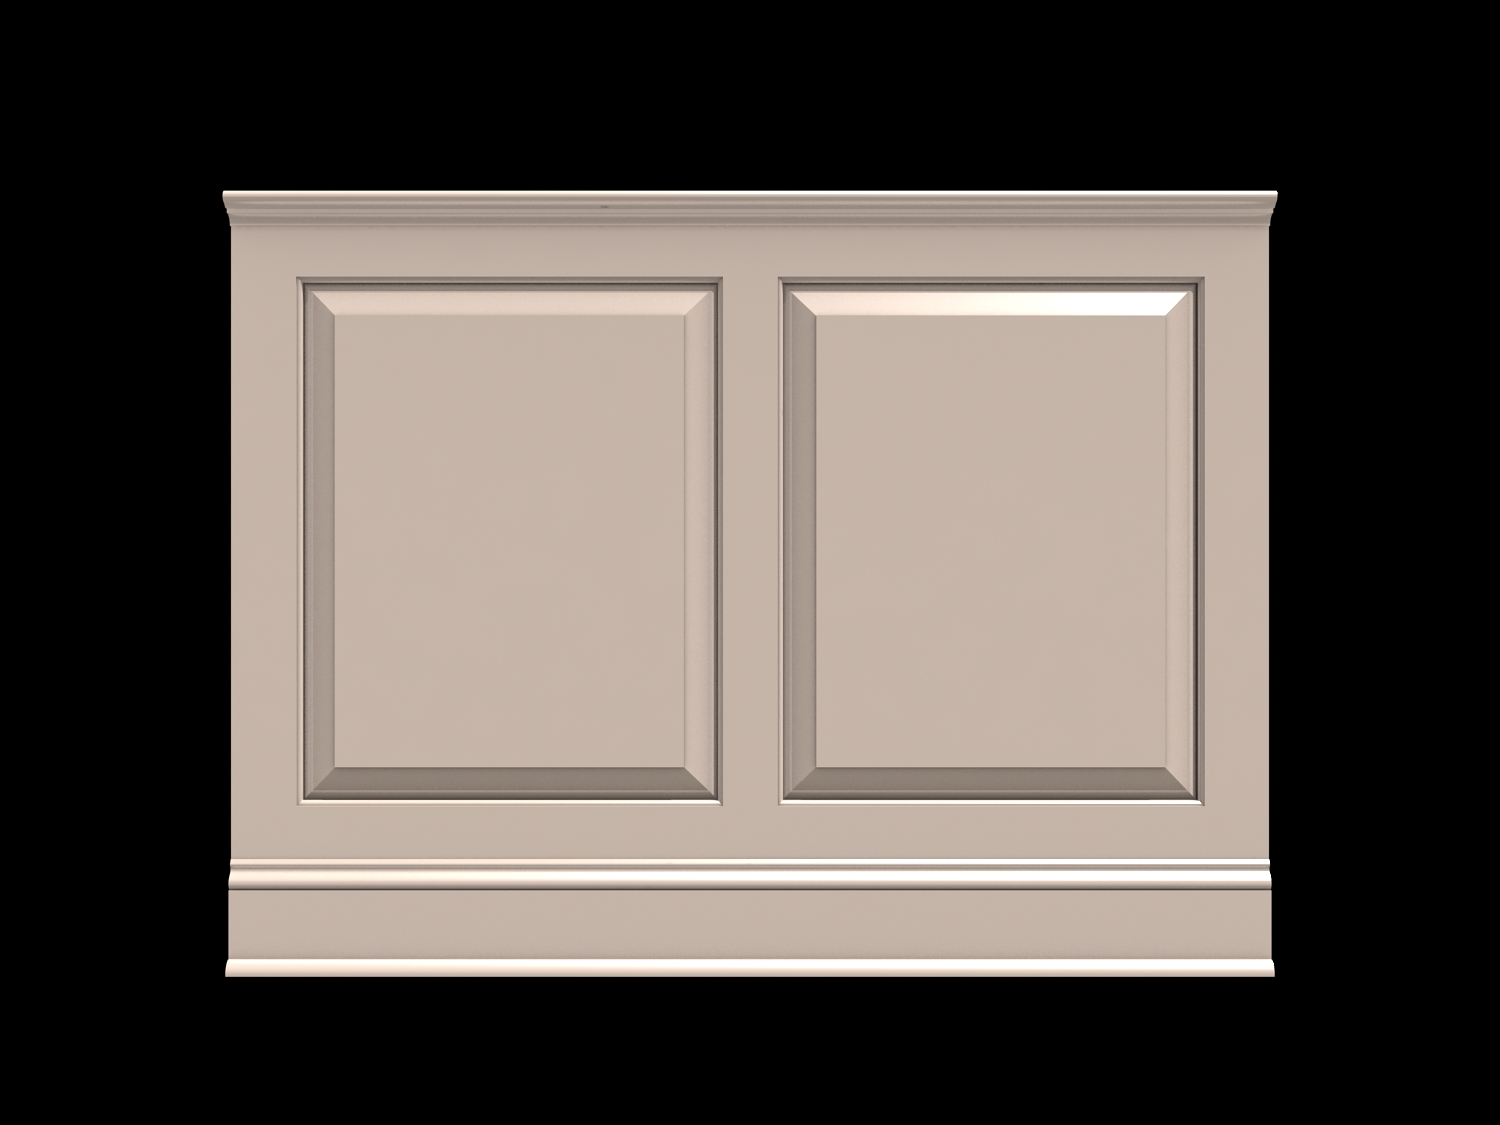 Wainscot solutions option 1 fairfield raised panel shown in 36